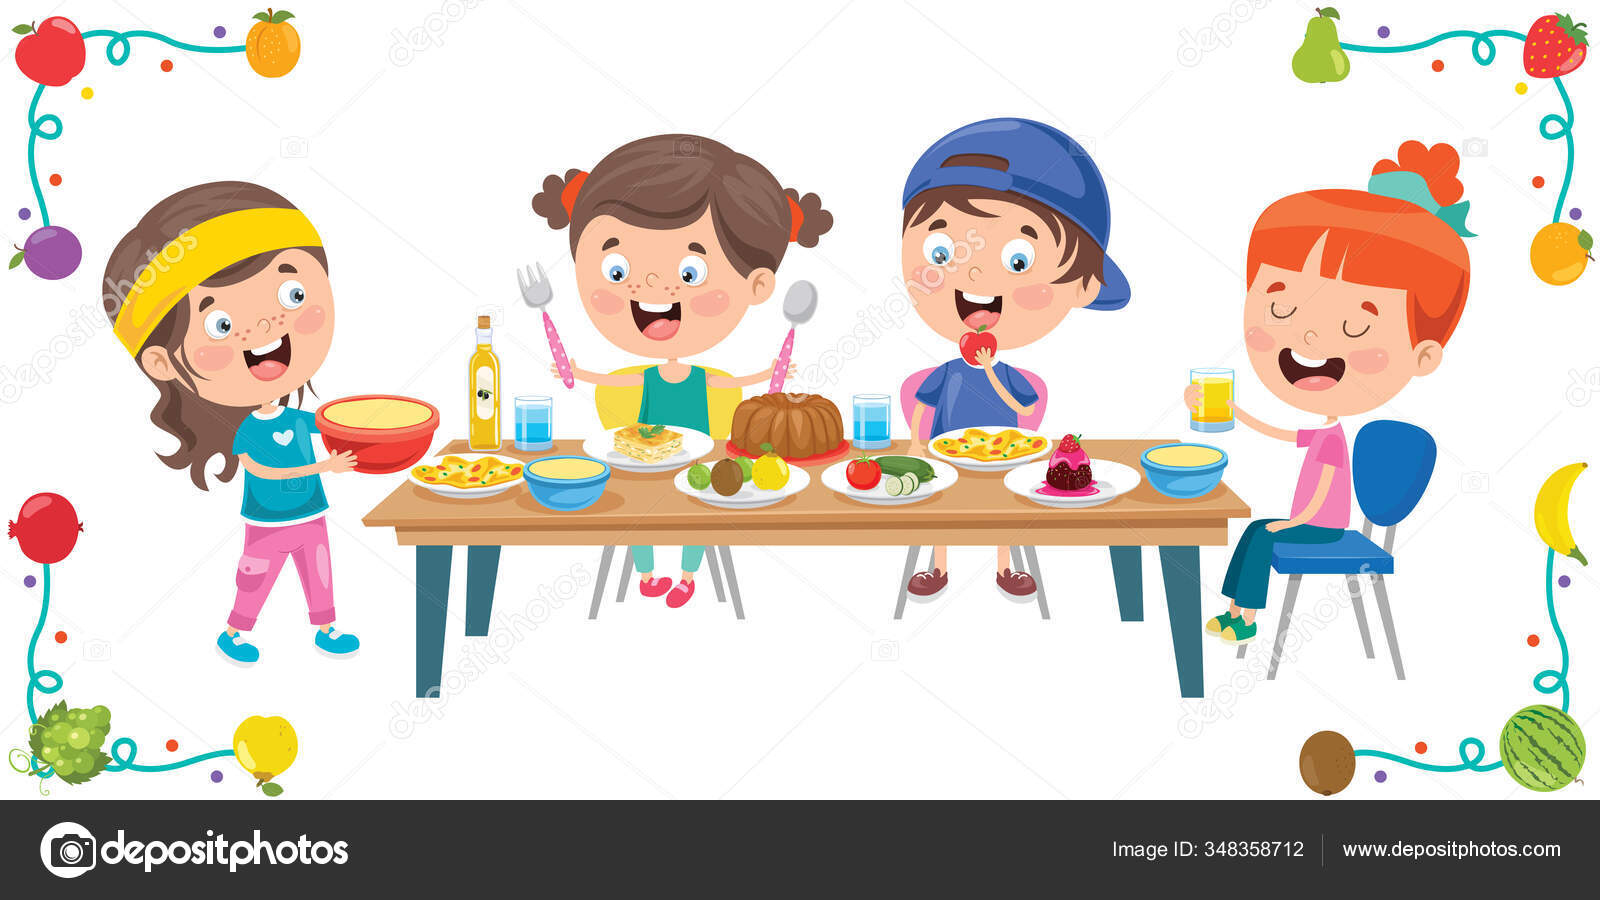 ᐈ Eating Lunch Cartoon Stock Pictures Royalty Free Kids Eating Lunch Images Download On Depositphotos